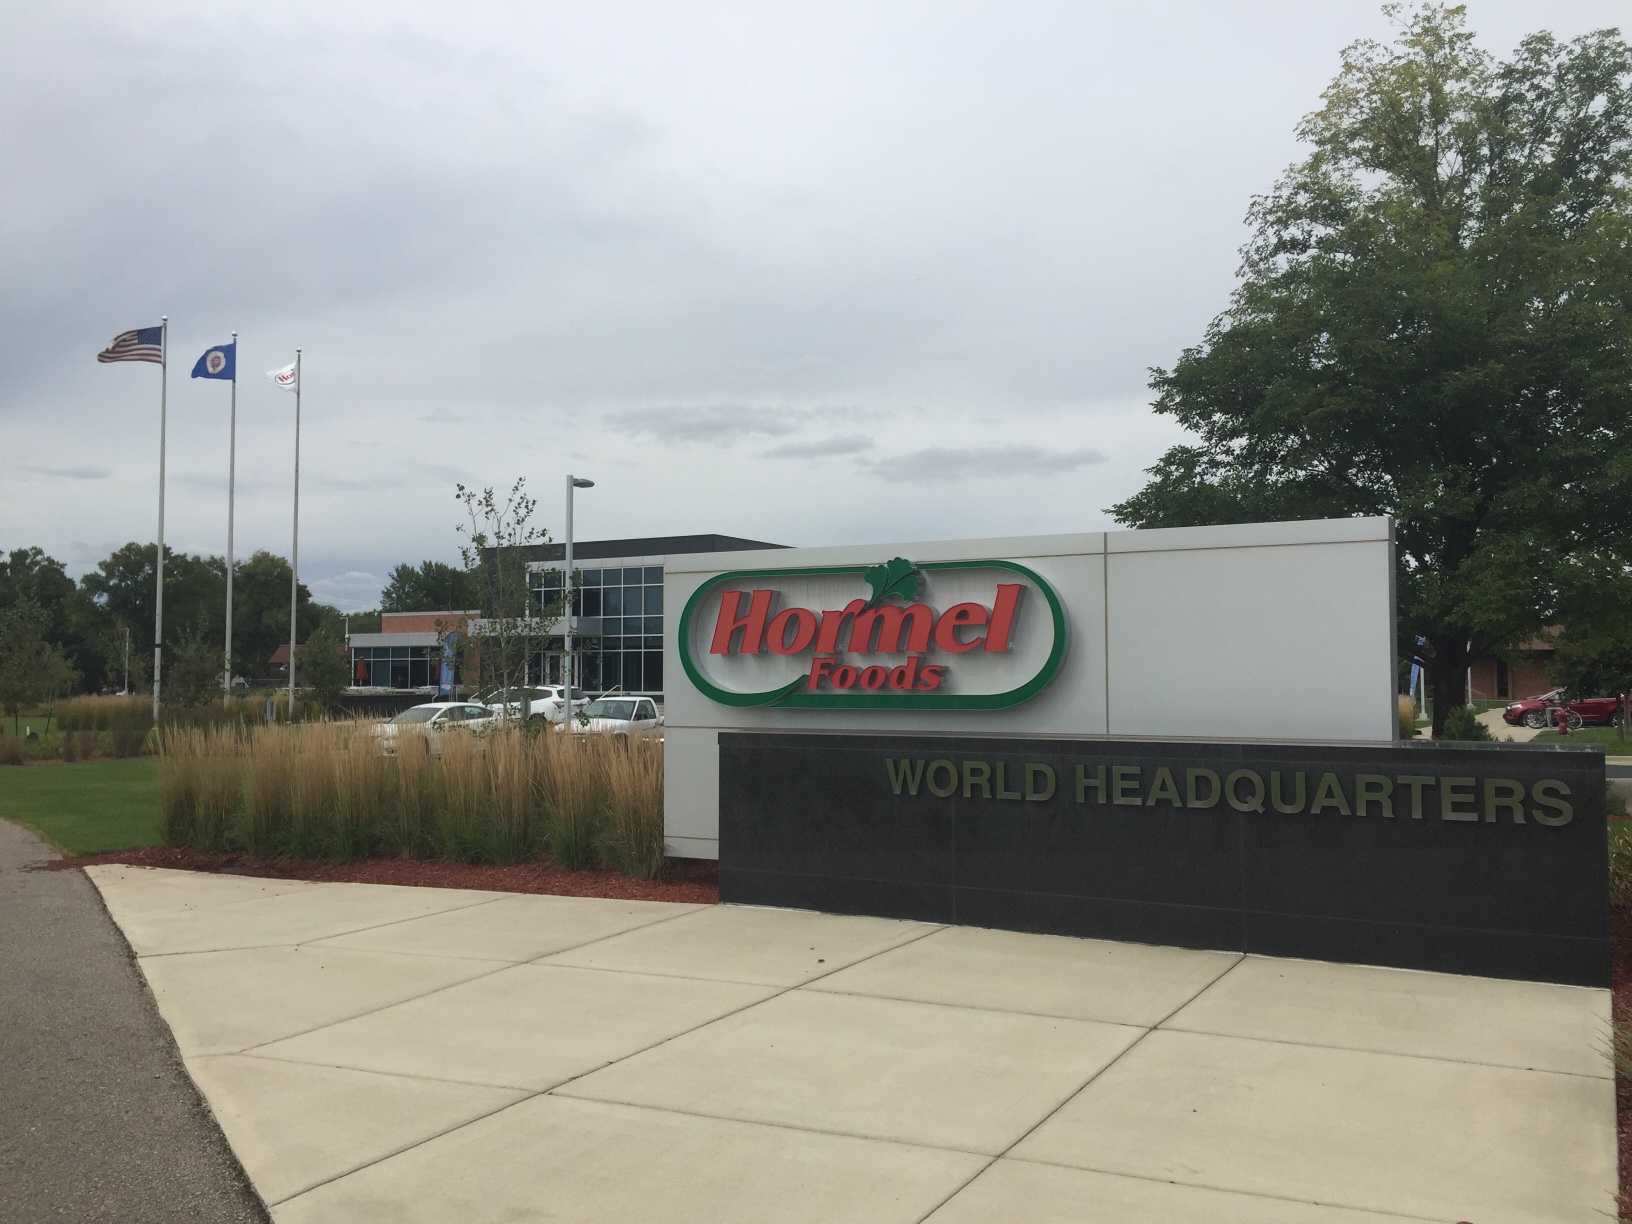 Entrance to Hormel Foods' corporate headquarters in Austin, Minnesota.